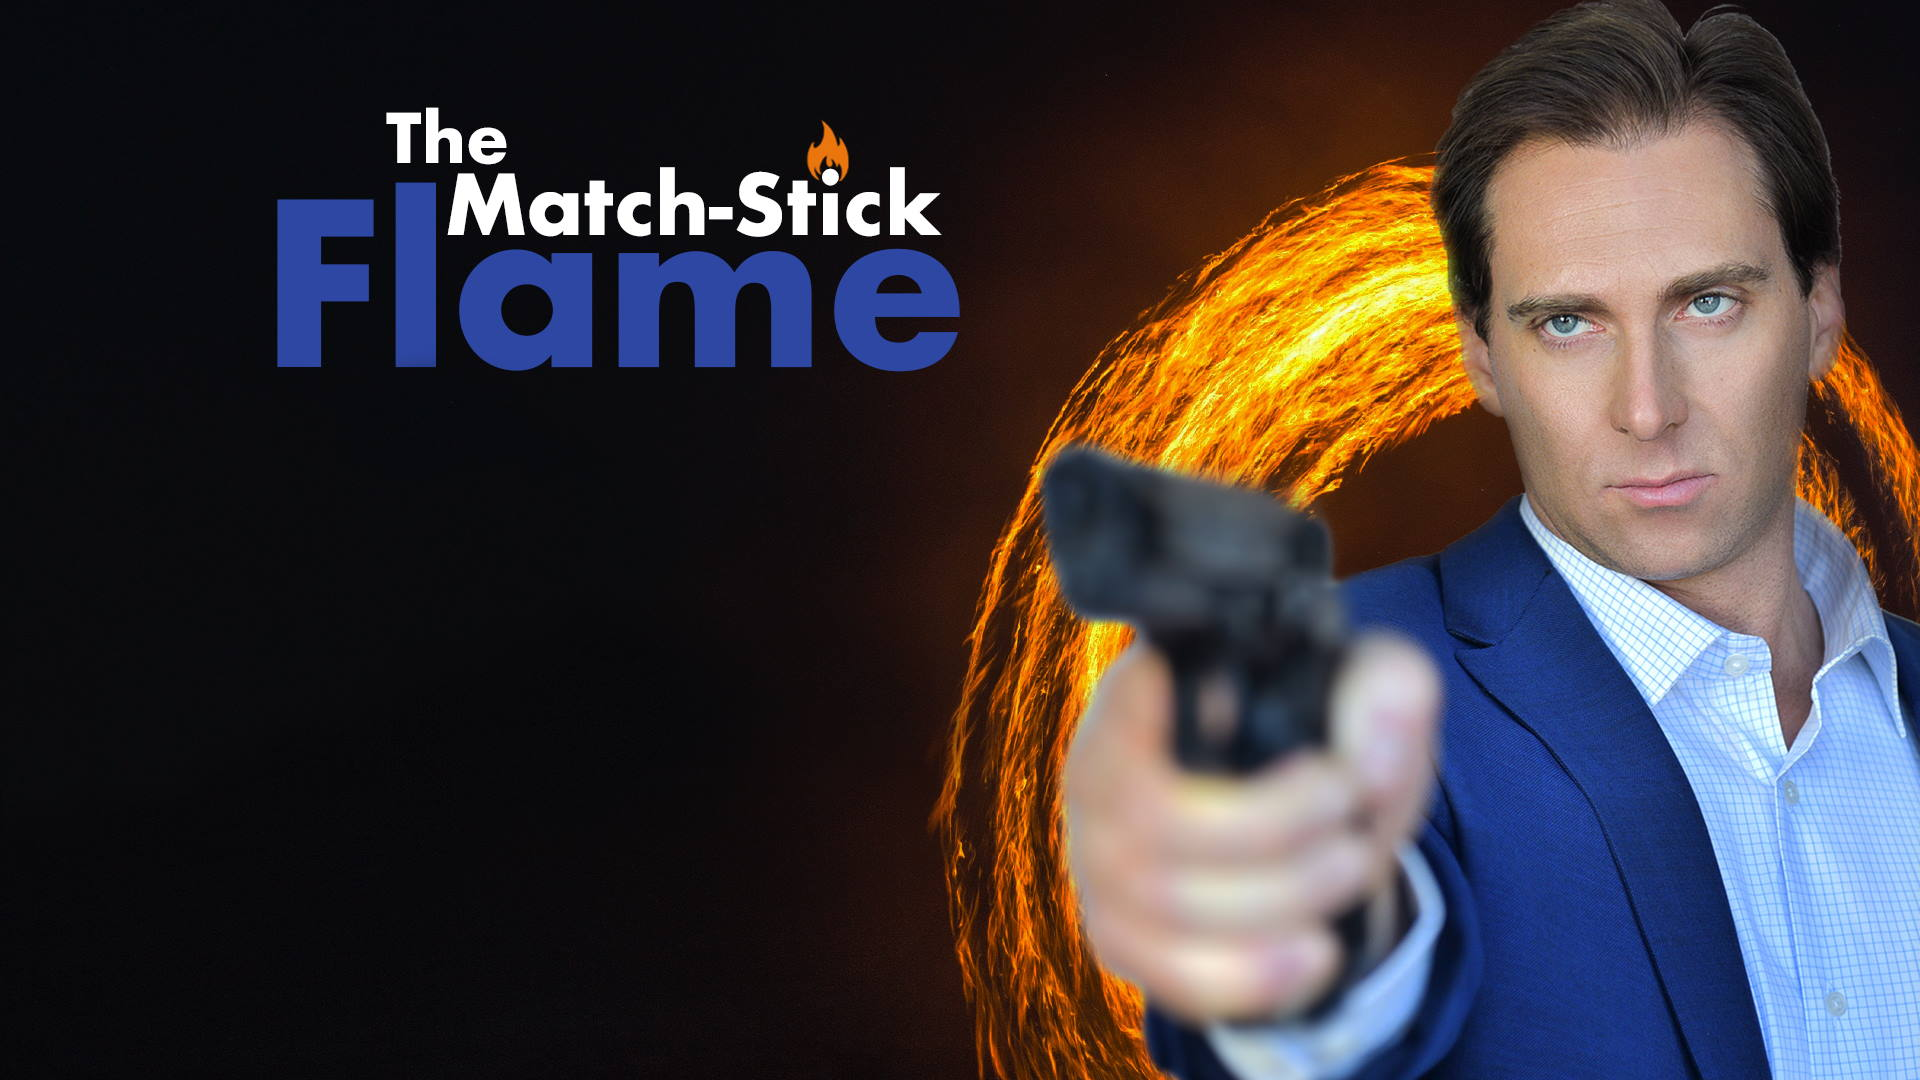 The Match Stick Flame